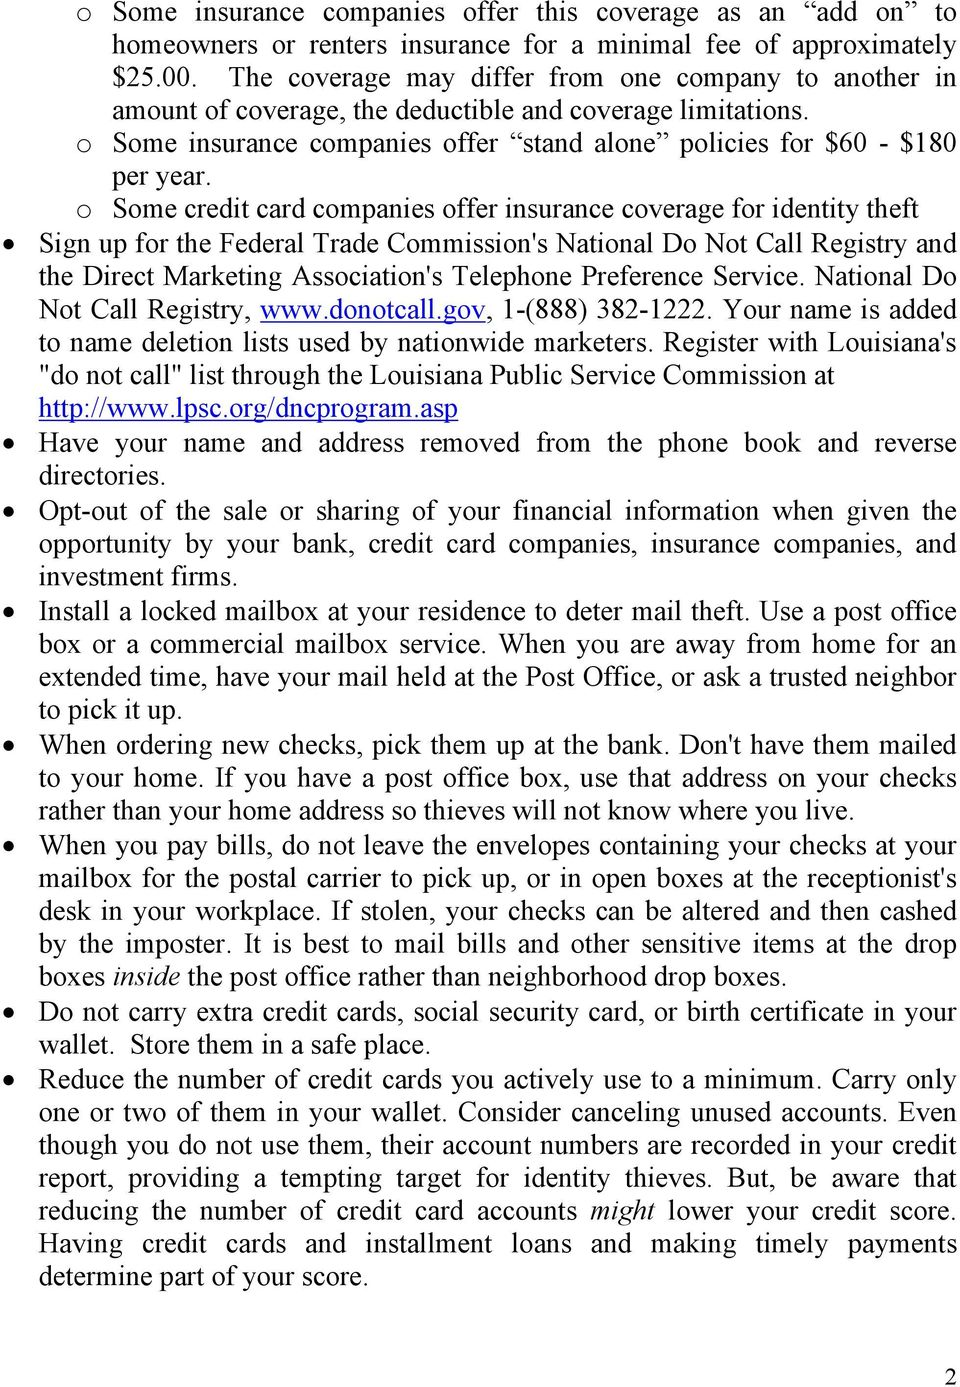 o Some credit card companies offer insurance coverage for identity theft Sign up for the Federal Trade Commission's National Do Not Call Registry and the Direct Marketing Association's Telephone